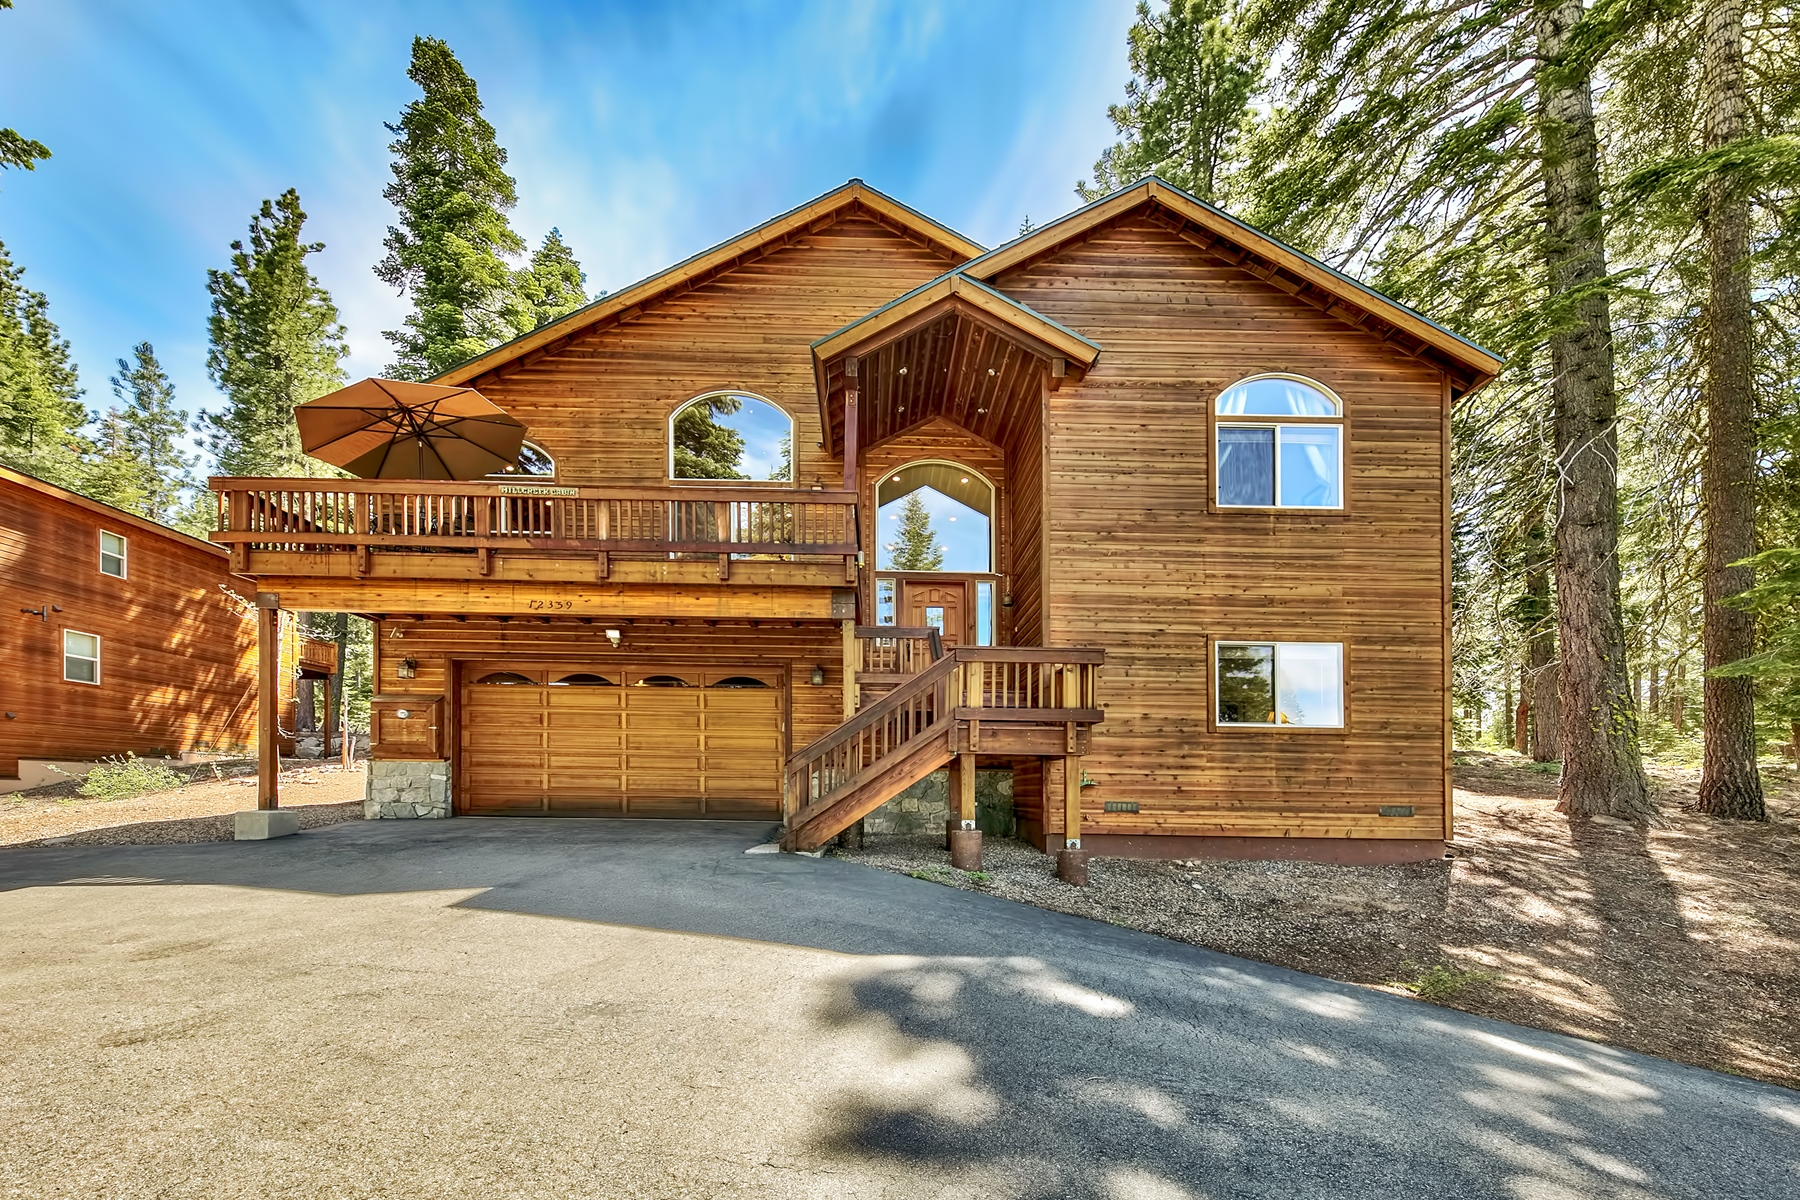 Property for Active at 12359 Muhlebach Way, Truckee, CA 96161 12359 Muhlebach Way Truckee, California 96161 United States